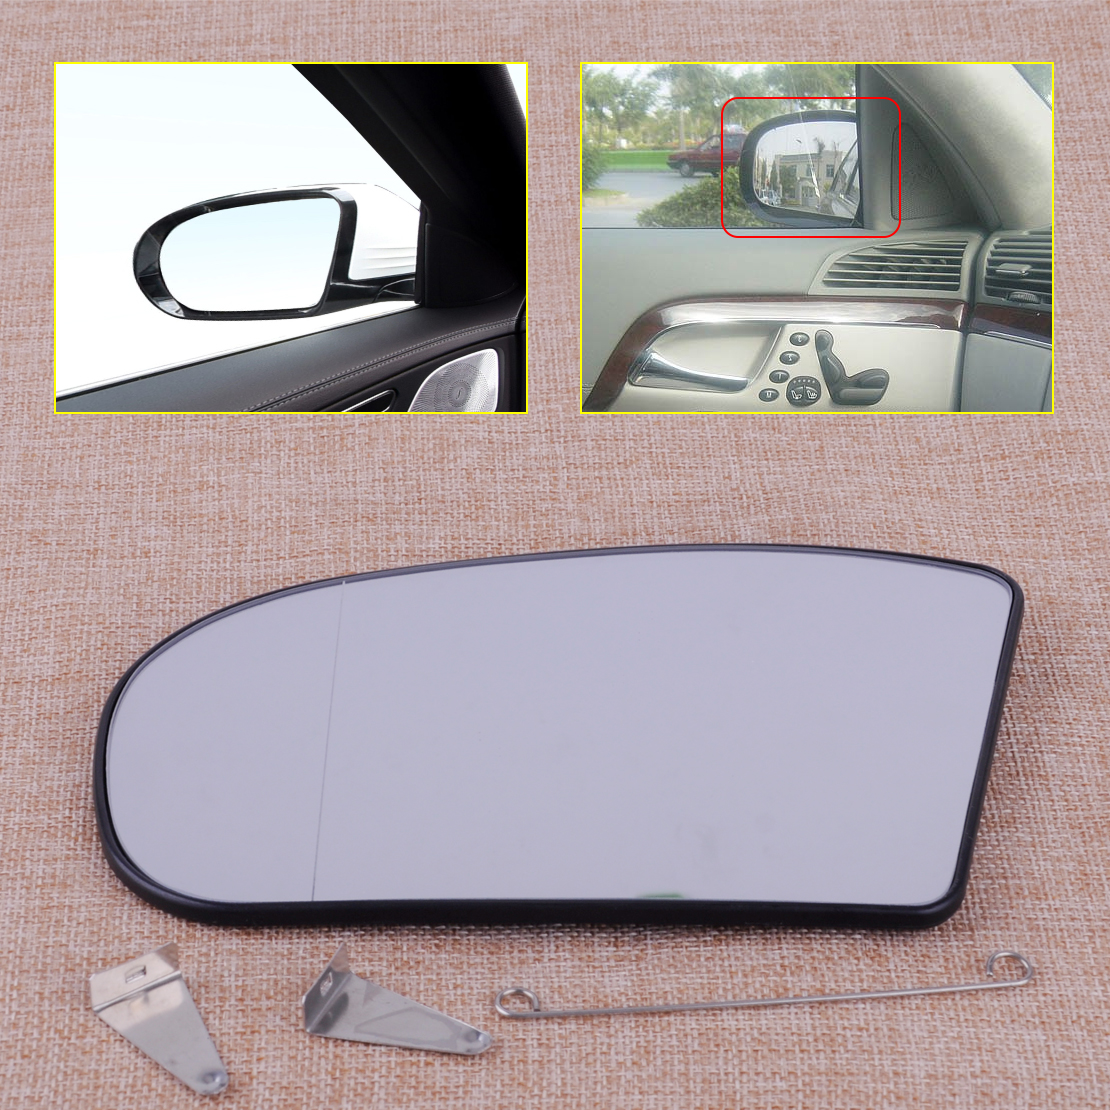 CITALL 2038100121 Left Heated Wide Angle Door Mirror Glass Fit For Mercedes E C Class W211 W203 E320 E500 E55 C230 C240 C280